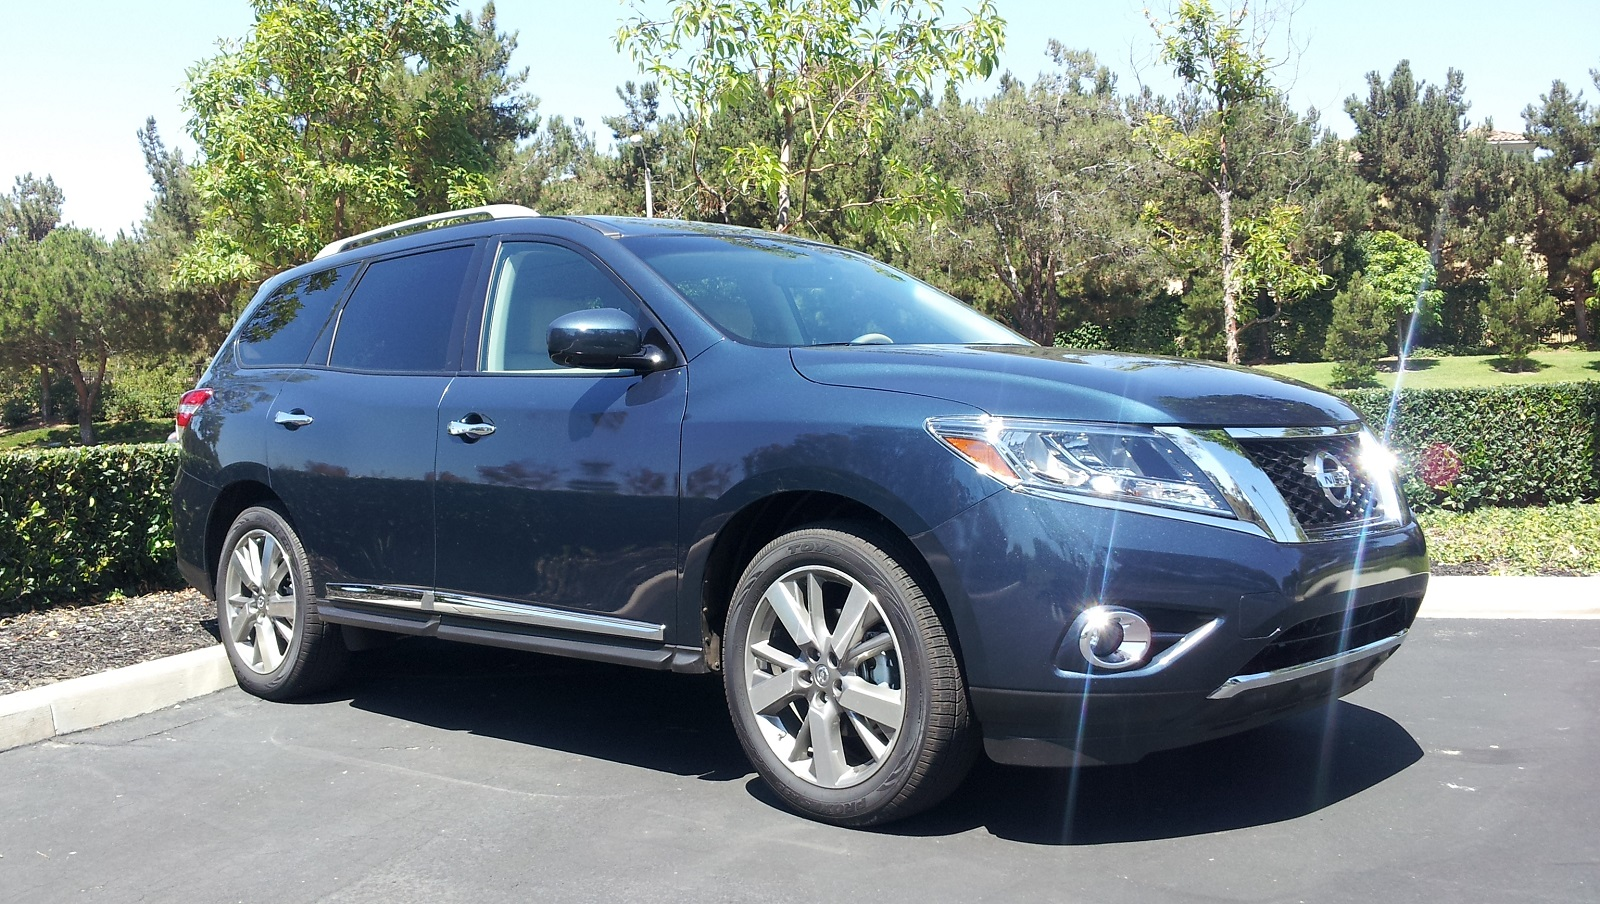 Nissan Pathfinder Hybrid: Missing In Action, Or Just Slow